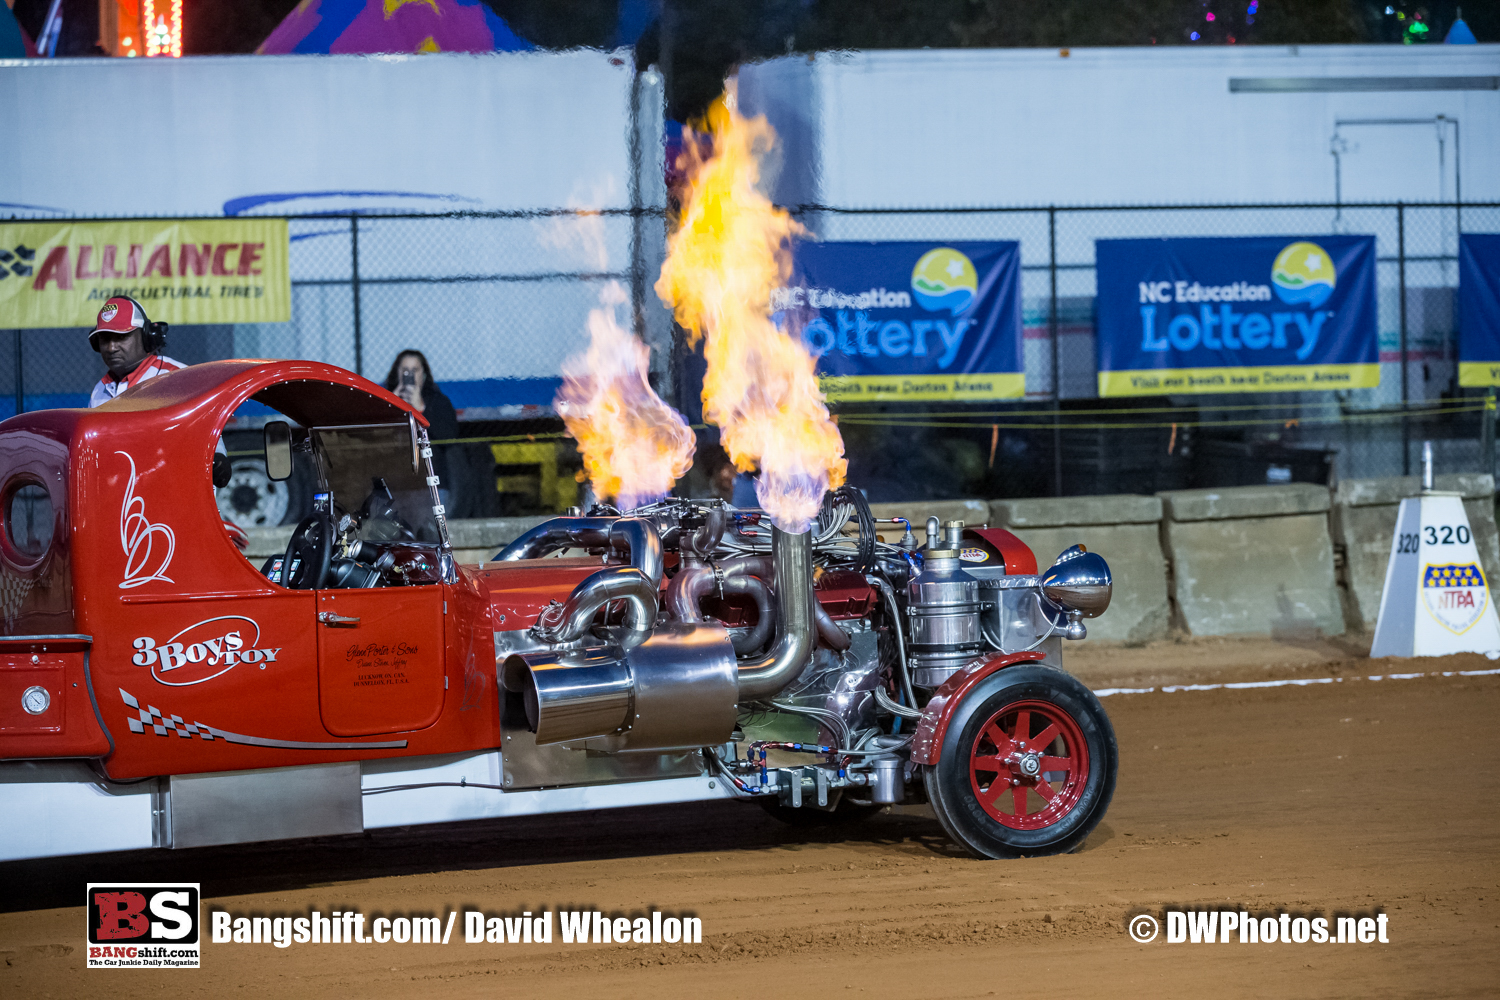 Pulling Action Photos: The Dirt Was Flying At The NC State Fair!